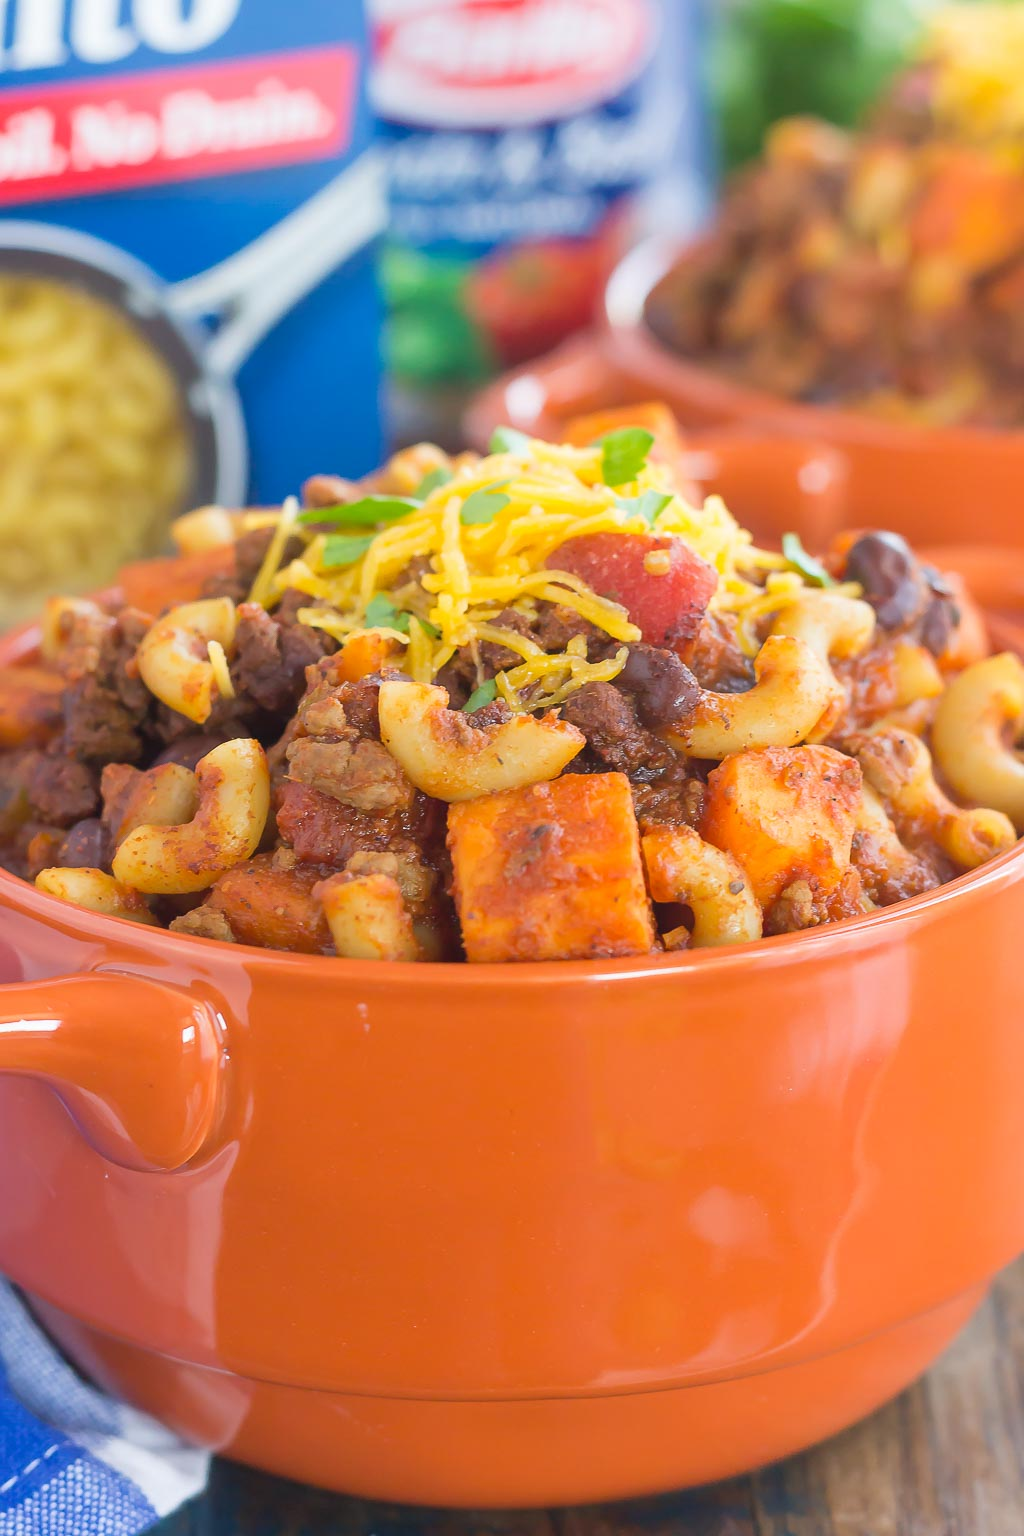 This Sweet Potato Chili Pasta is a one pot dish that's packed with the warm and comforting flavors of the season. Hearty, thick, and filled with sweet potatoes, beef, black beans, and pasta, you'll love this easy meal!